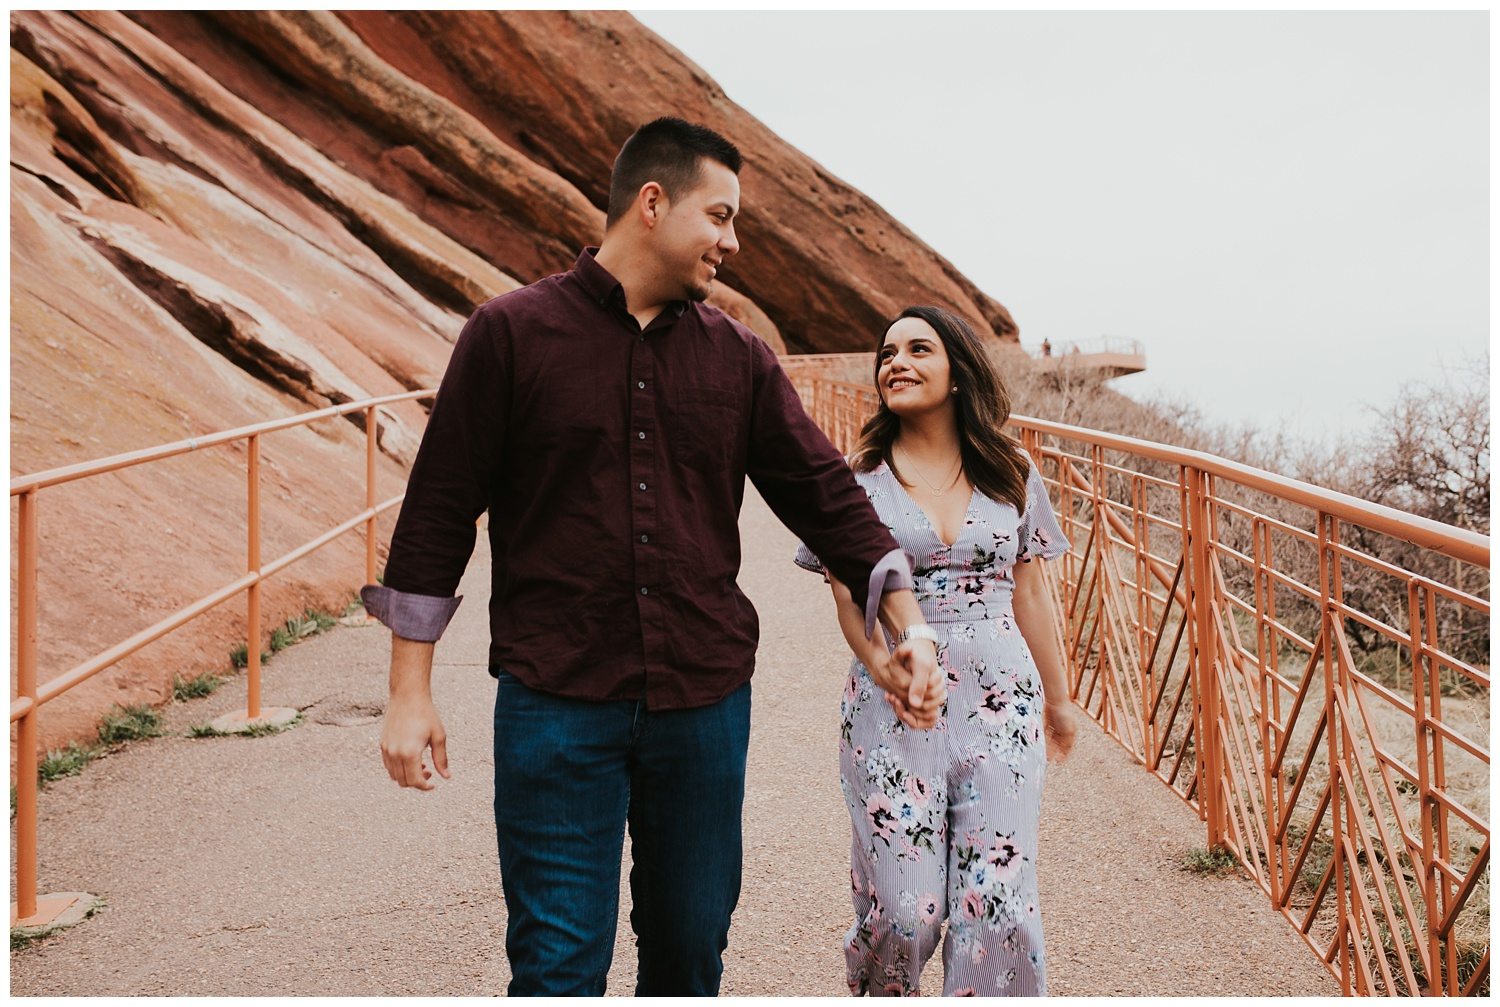 Meredith_Soy_Photography_Red_Rocks_Photographer_0020.jpg